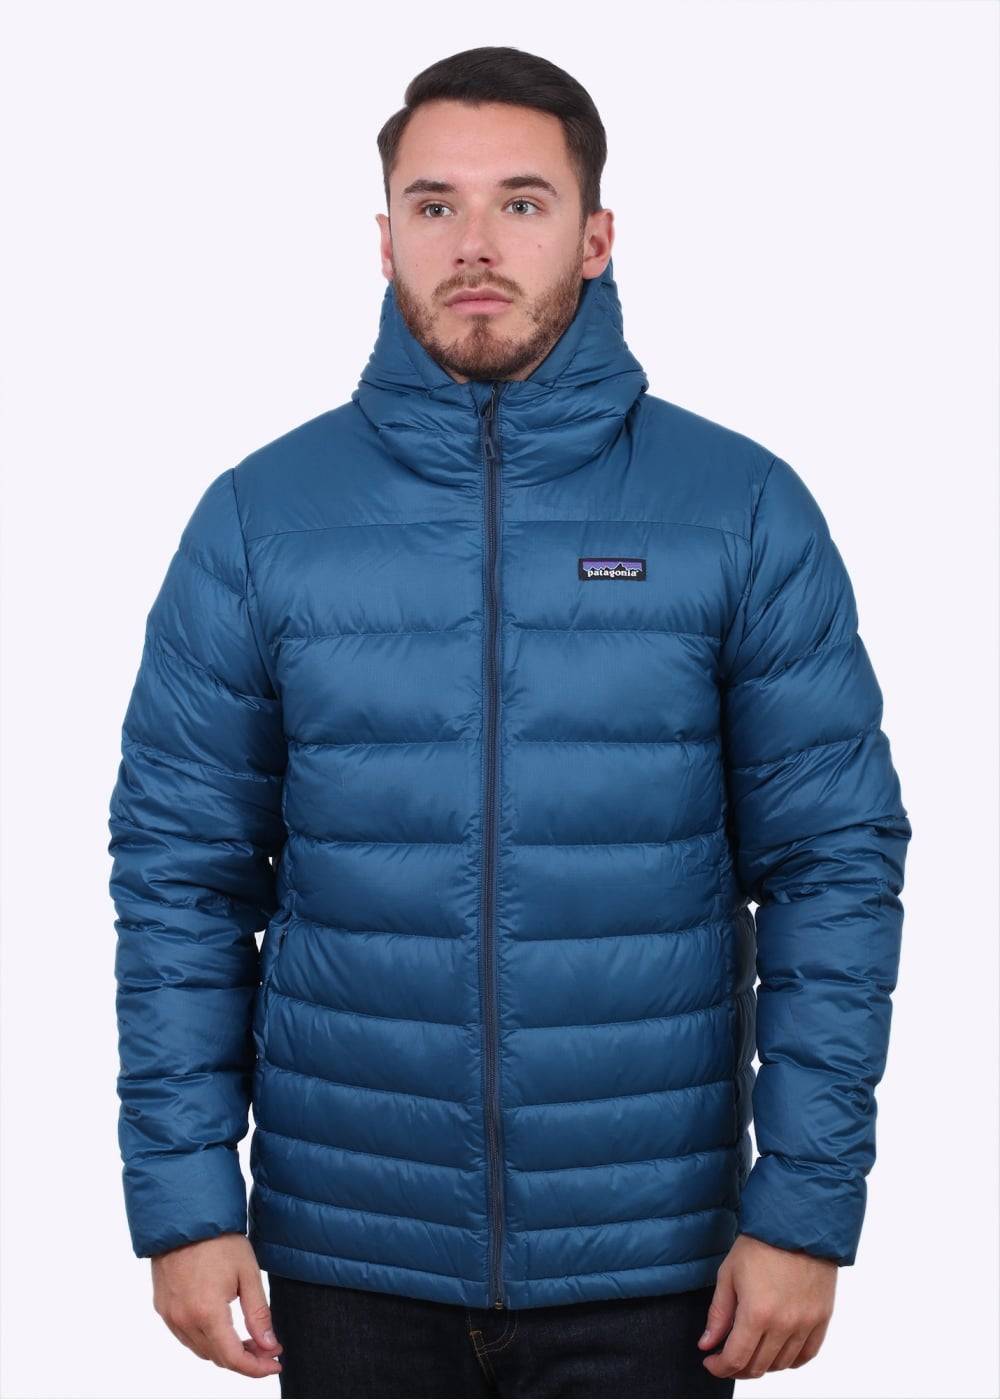 Patagonia Hi Loft Down Hoody Glass Blue Jackets From